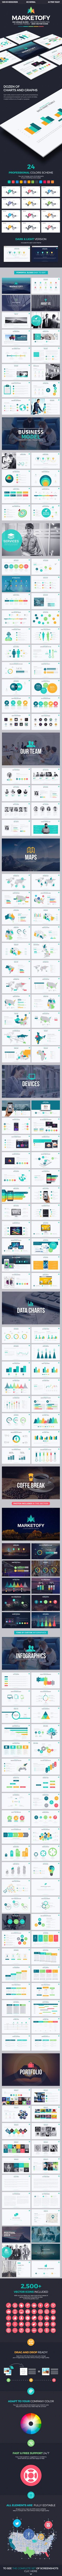 Marketofy - Ultimate PowerPoint Template #design #slides Download: http://graphicriver.net/item/marketofy-ultimate-powerpoint-template/13231486?ref=ksioks